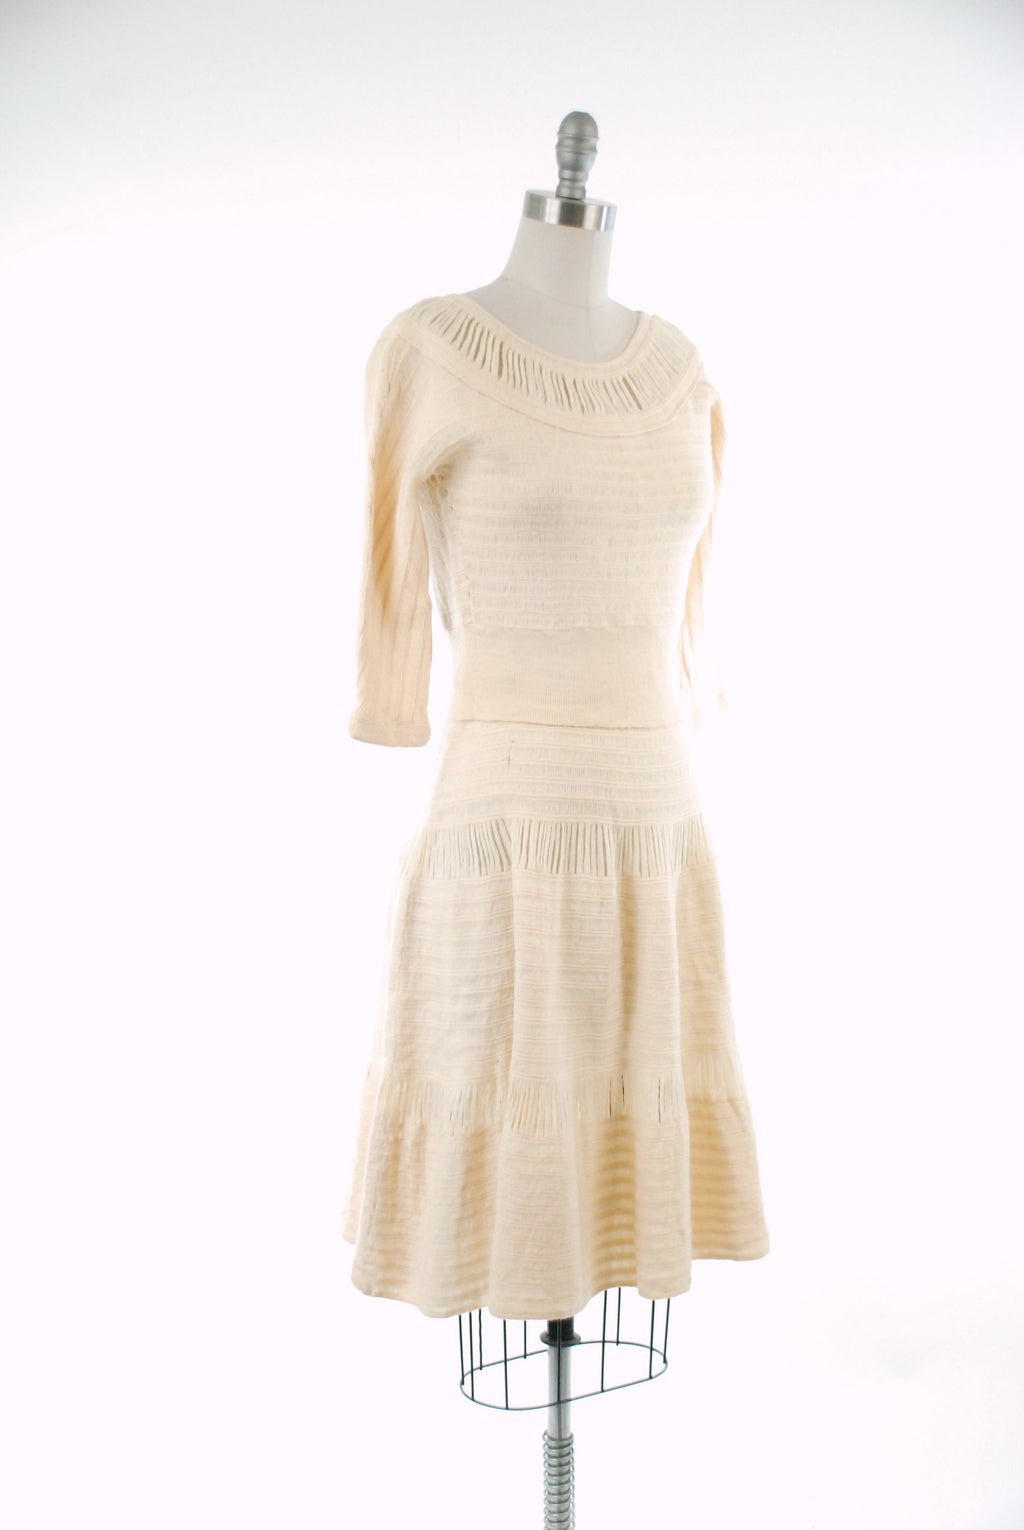 Vintage 1950s Sweater Dress Set - Lovely Ivory Wool Hairpin Knit 50s Pullover and Full Skirt